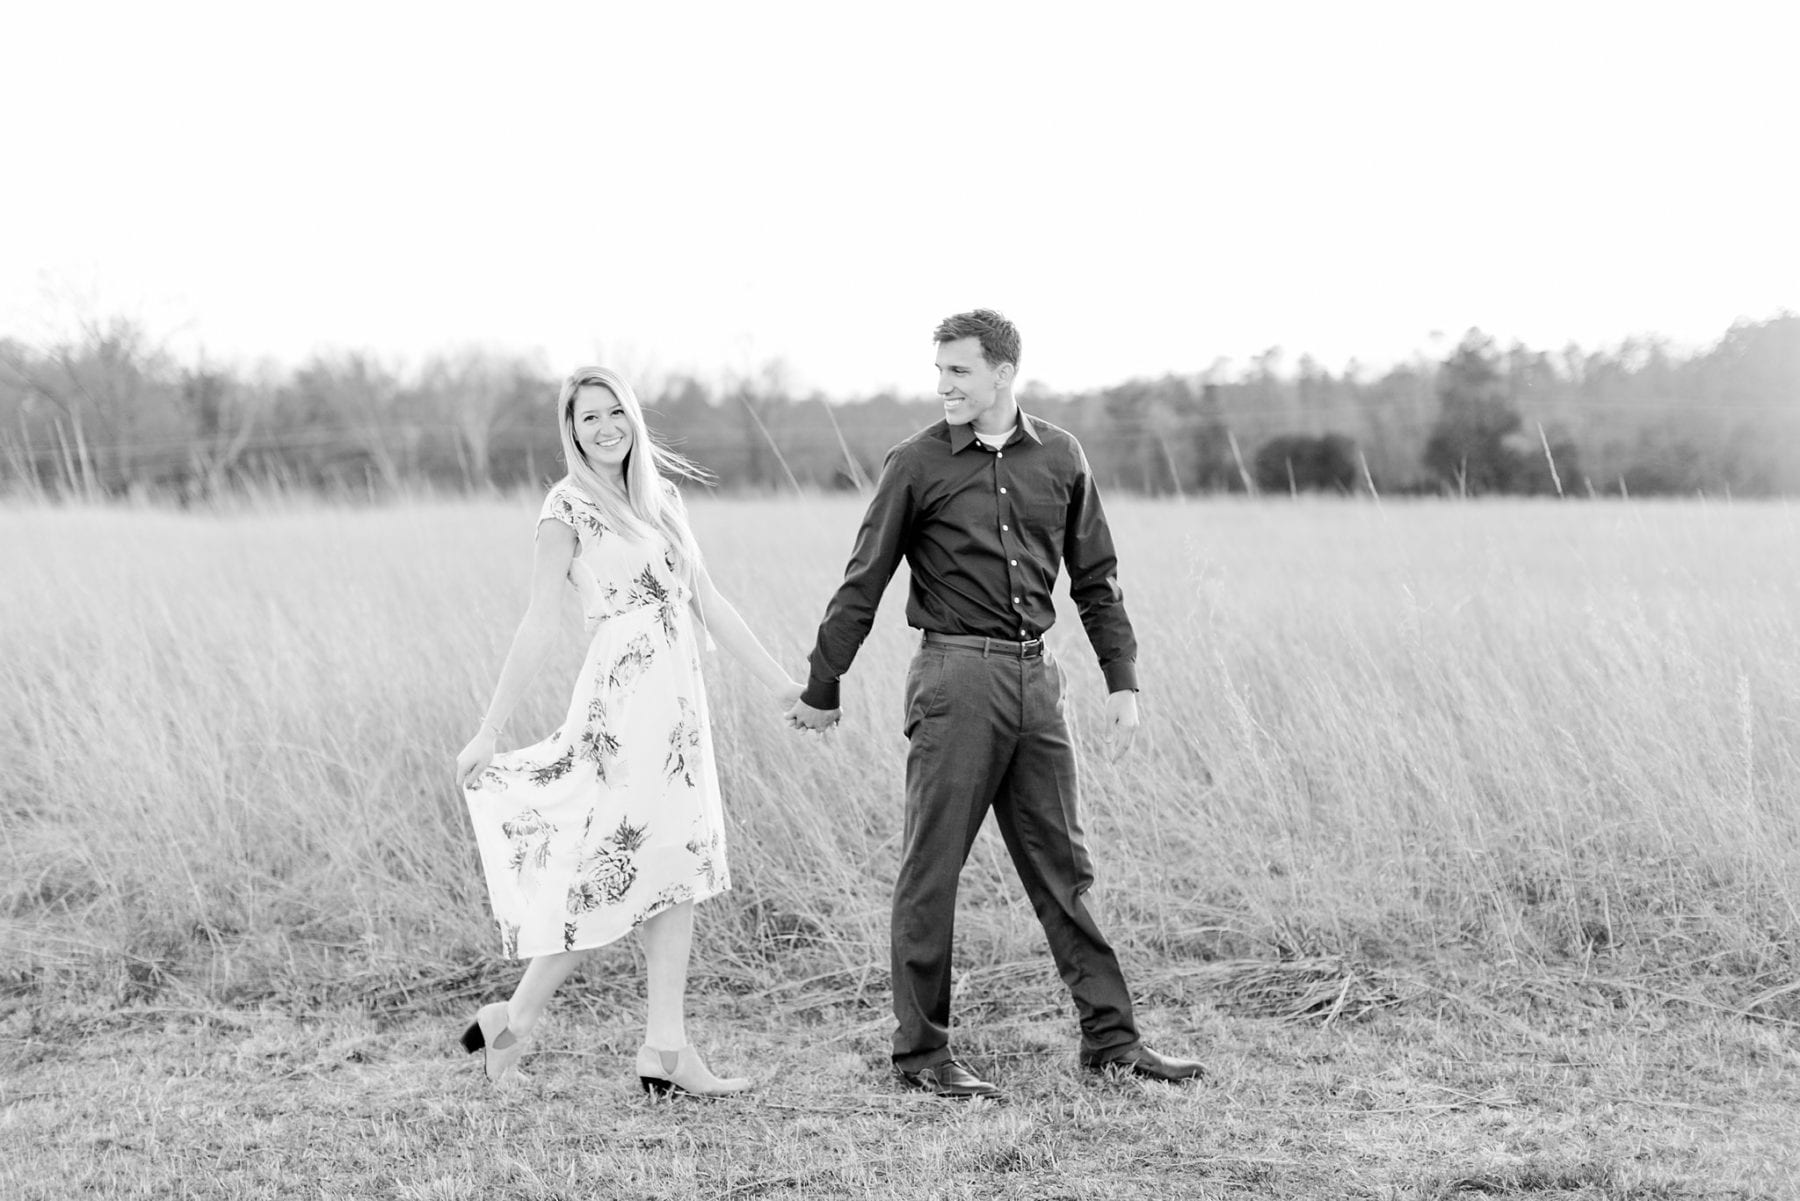 Manassas Battlefield Engagement Session Virginia Wedding Photographer Danielle & Charlie Megan Kelsey Photography-6284-2.jpg